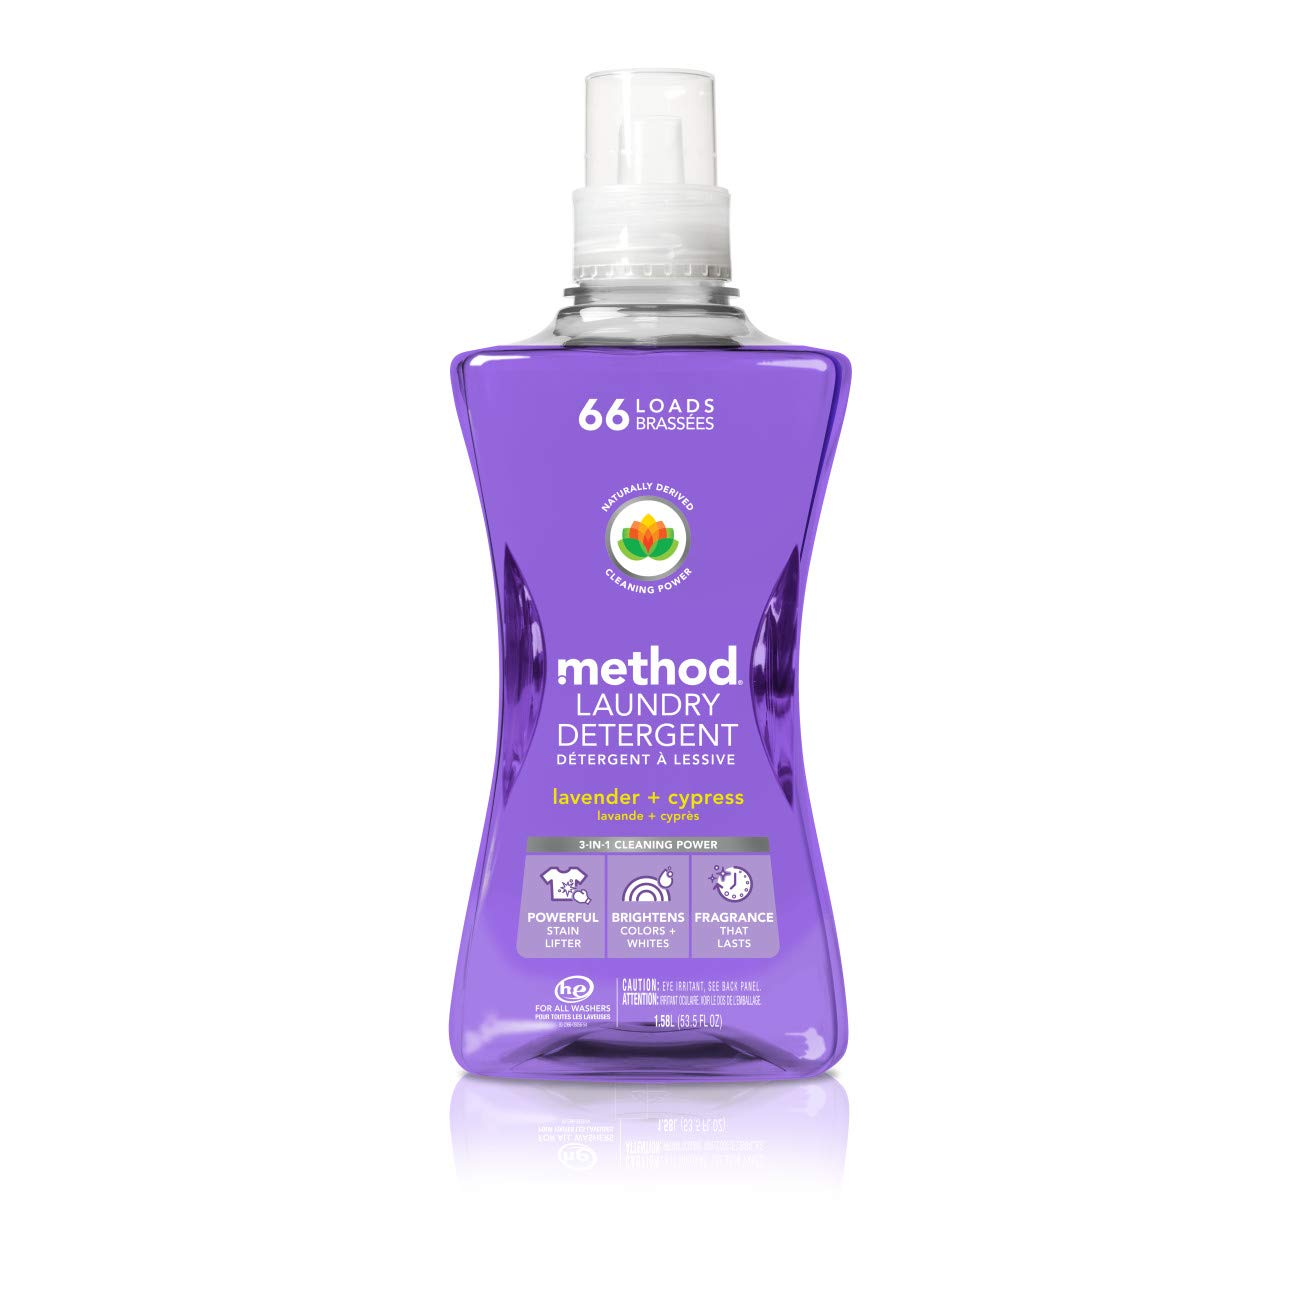 Method Concentrated Laundry Detergent, Lavender + Cypress, 53.5 Fl Oz (1 Count), 66 Loads by Method